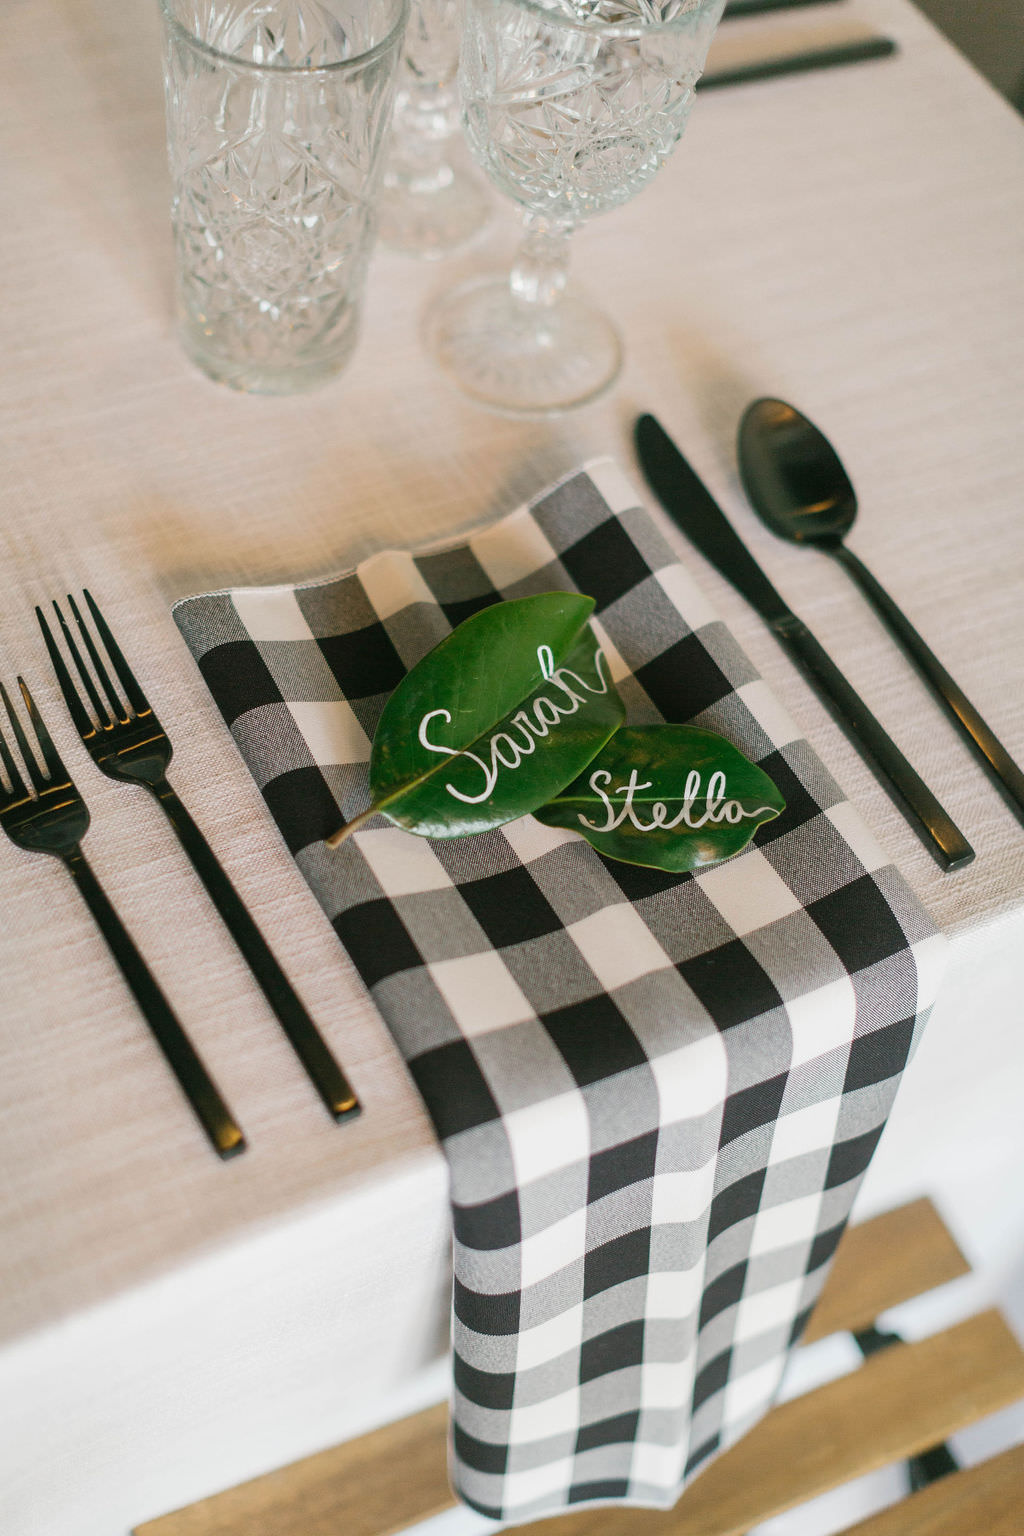 Magnolia Leaf Name Card with White Script Writing | Southern Inspired Magnolia Market Bridal Shower with Buffalo Plaid Linen Accents and Rustic Decor | Bruce Wayne Florals | A Chair Affair | Over the Top Rental Linens | Parties A'La Carte Wedding and Event Planner